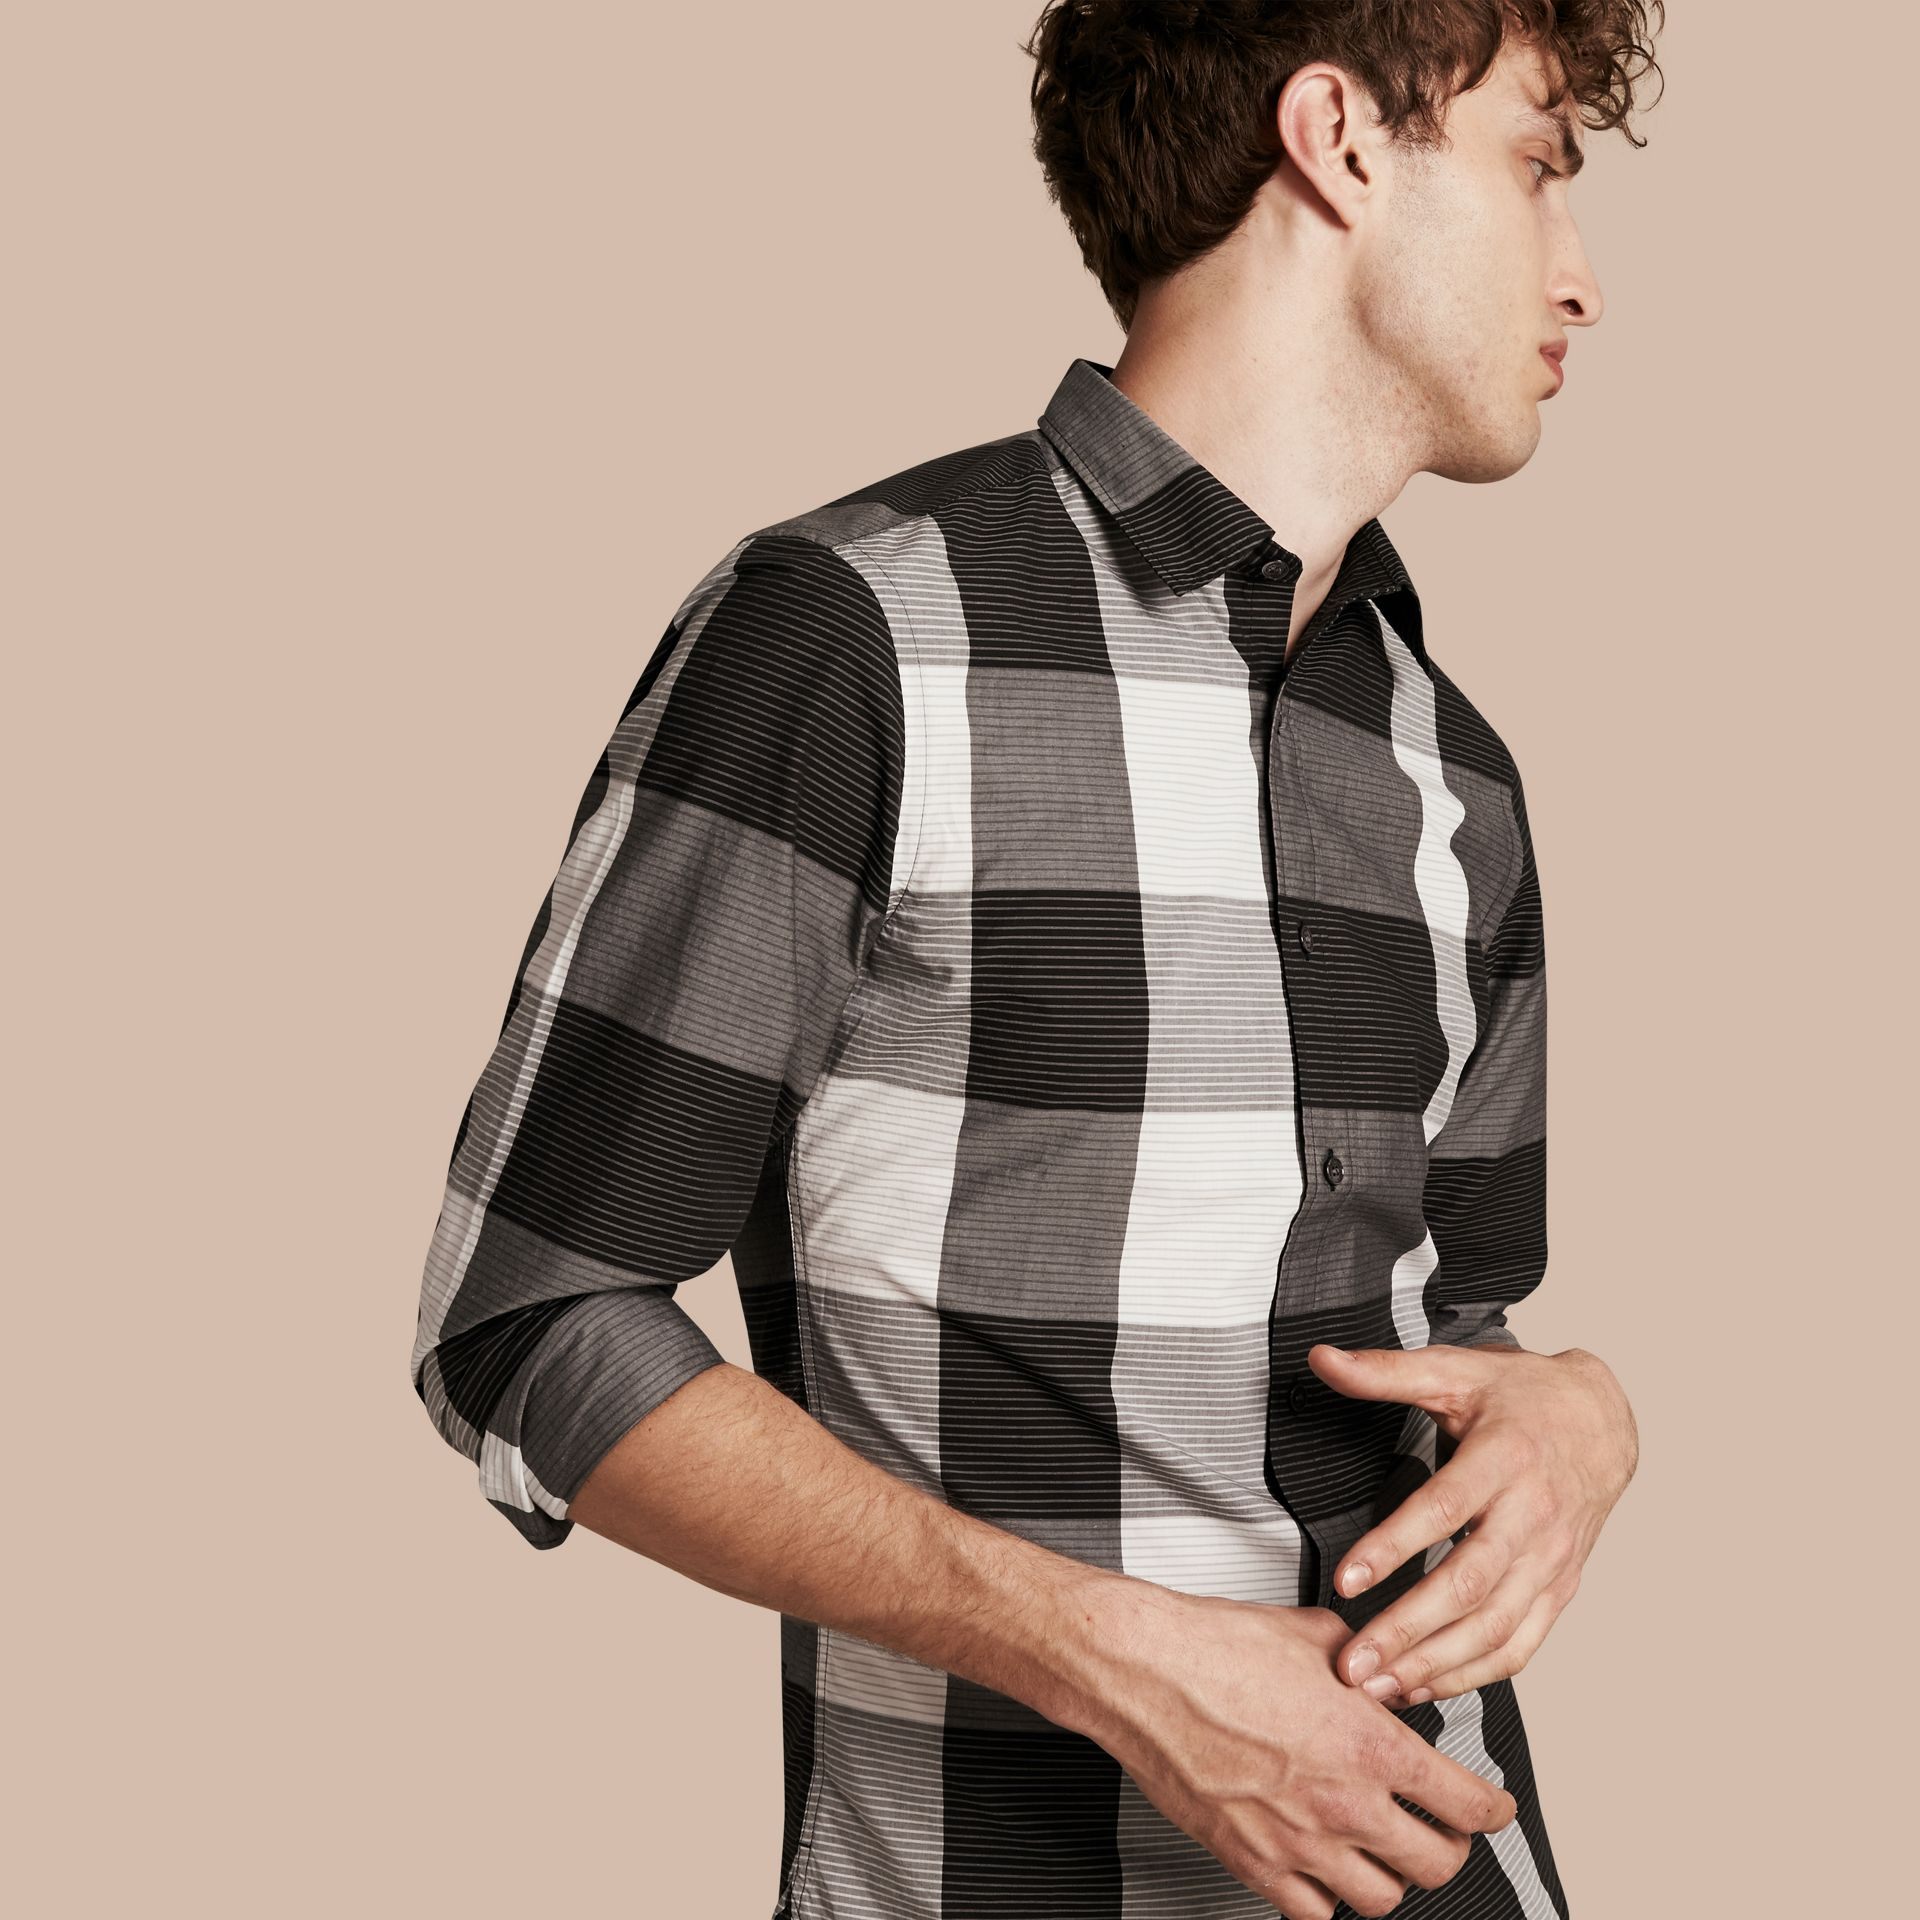 Black Graphic Check Cotton Shirt Black - gallery image 1